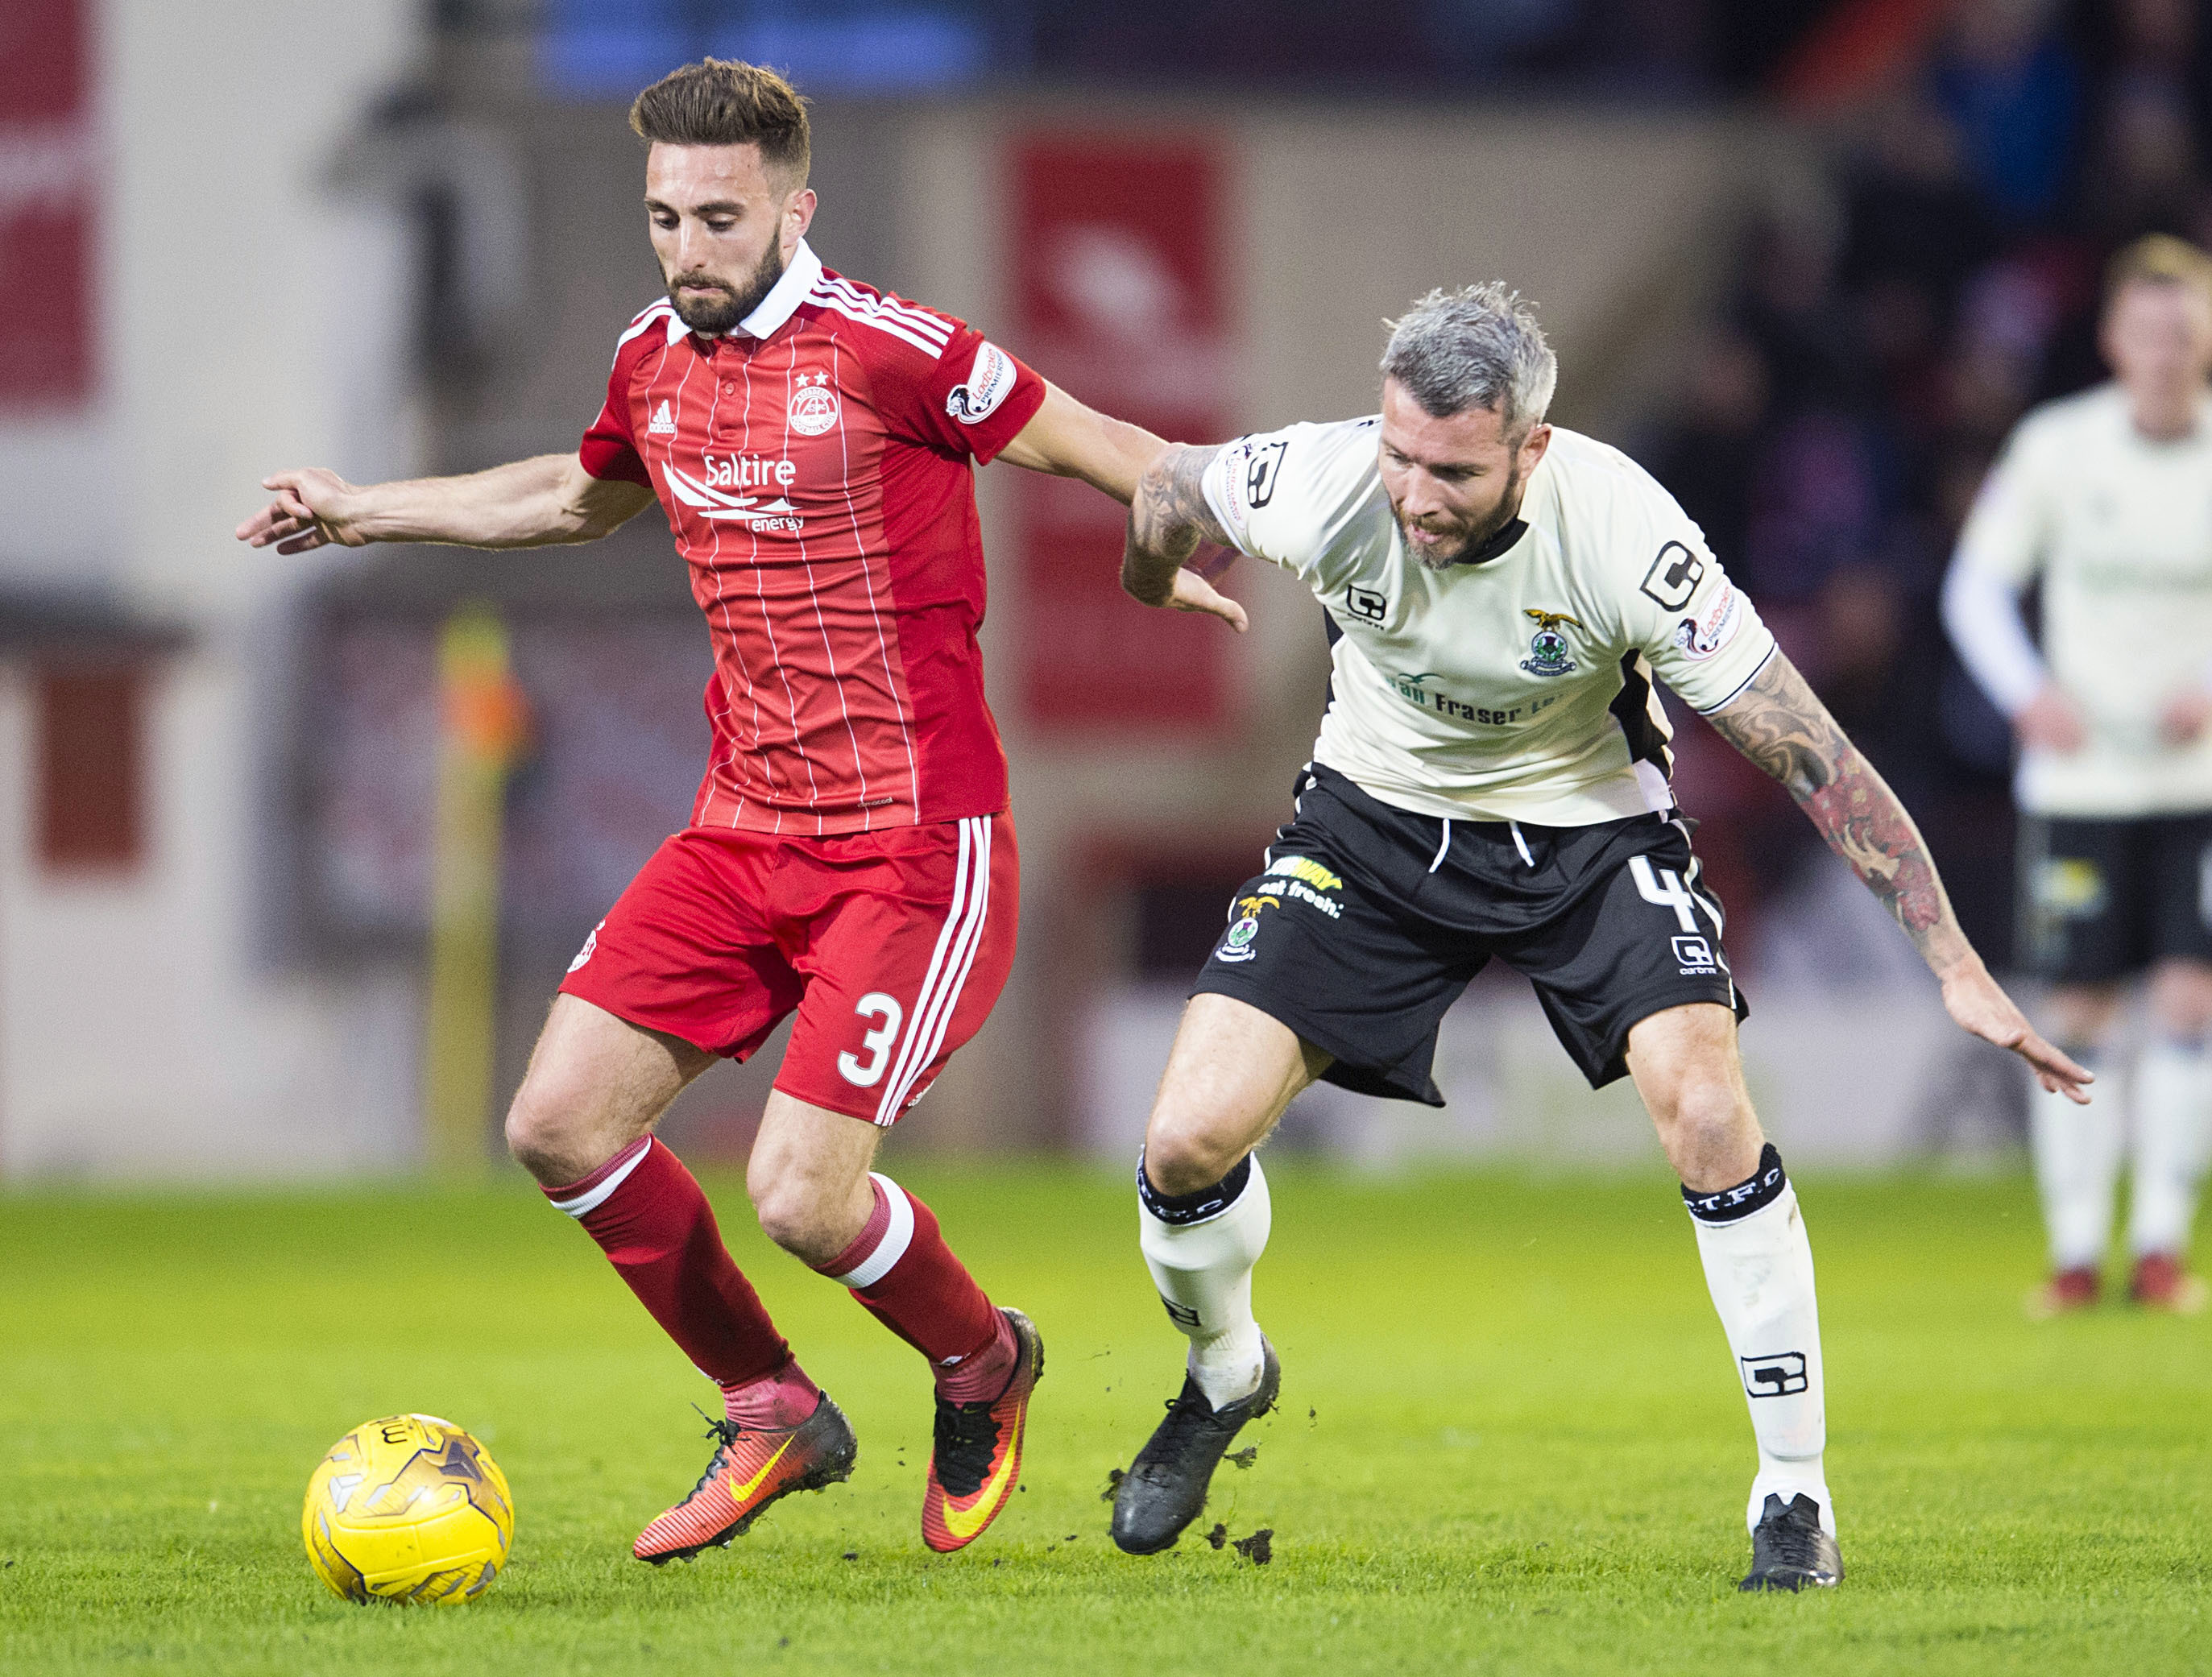 Aberdeen's Graeme Shinnie holds off Inverness' Kevin McNaughton (right).